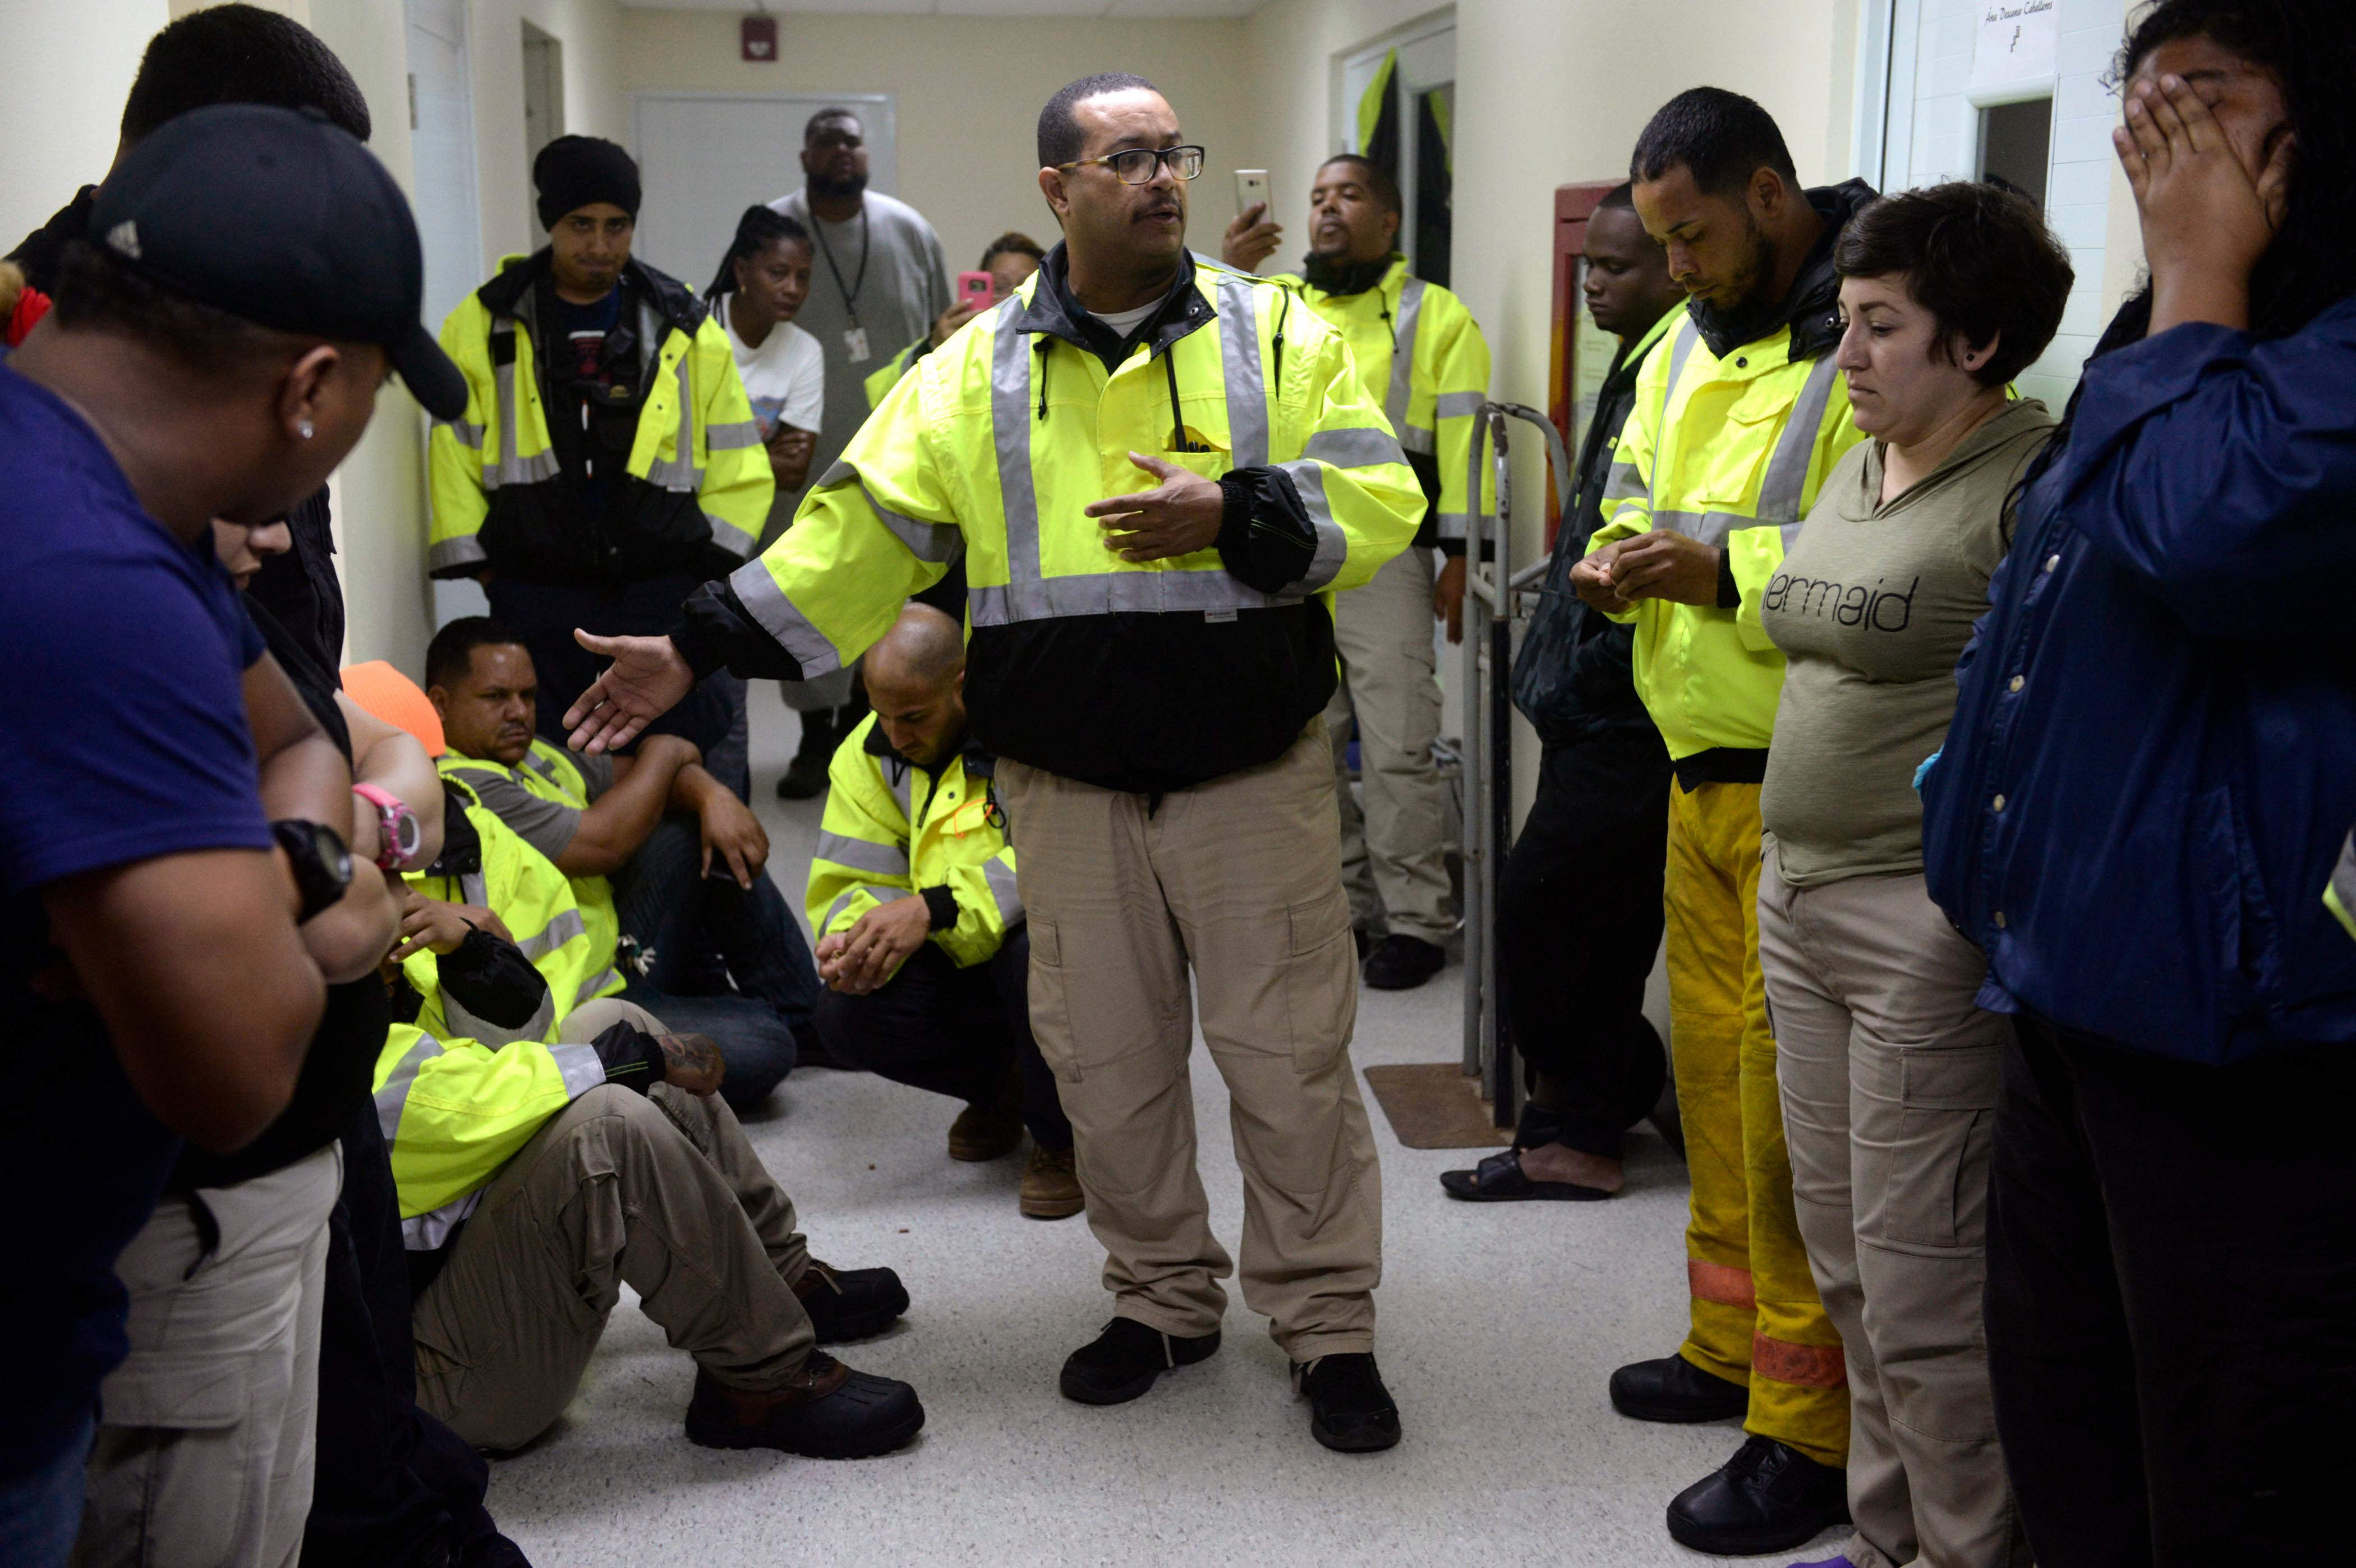 CORRECTS DAY OF WEEK TO WEDNESDAY FROM TUESDAY - Team leader Joey Rivera gives a speech while the team waits to assist in the aftermath of Hurricane Maria in Humacao, Puerto Rico, Wednesday, Sept. 20, 2017. (AP Photo/Carlos Giusti)